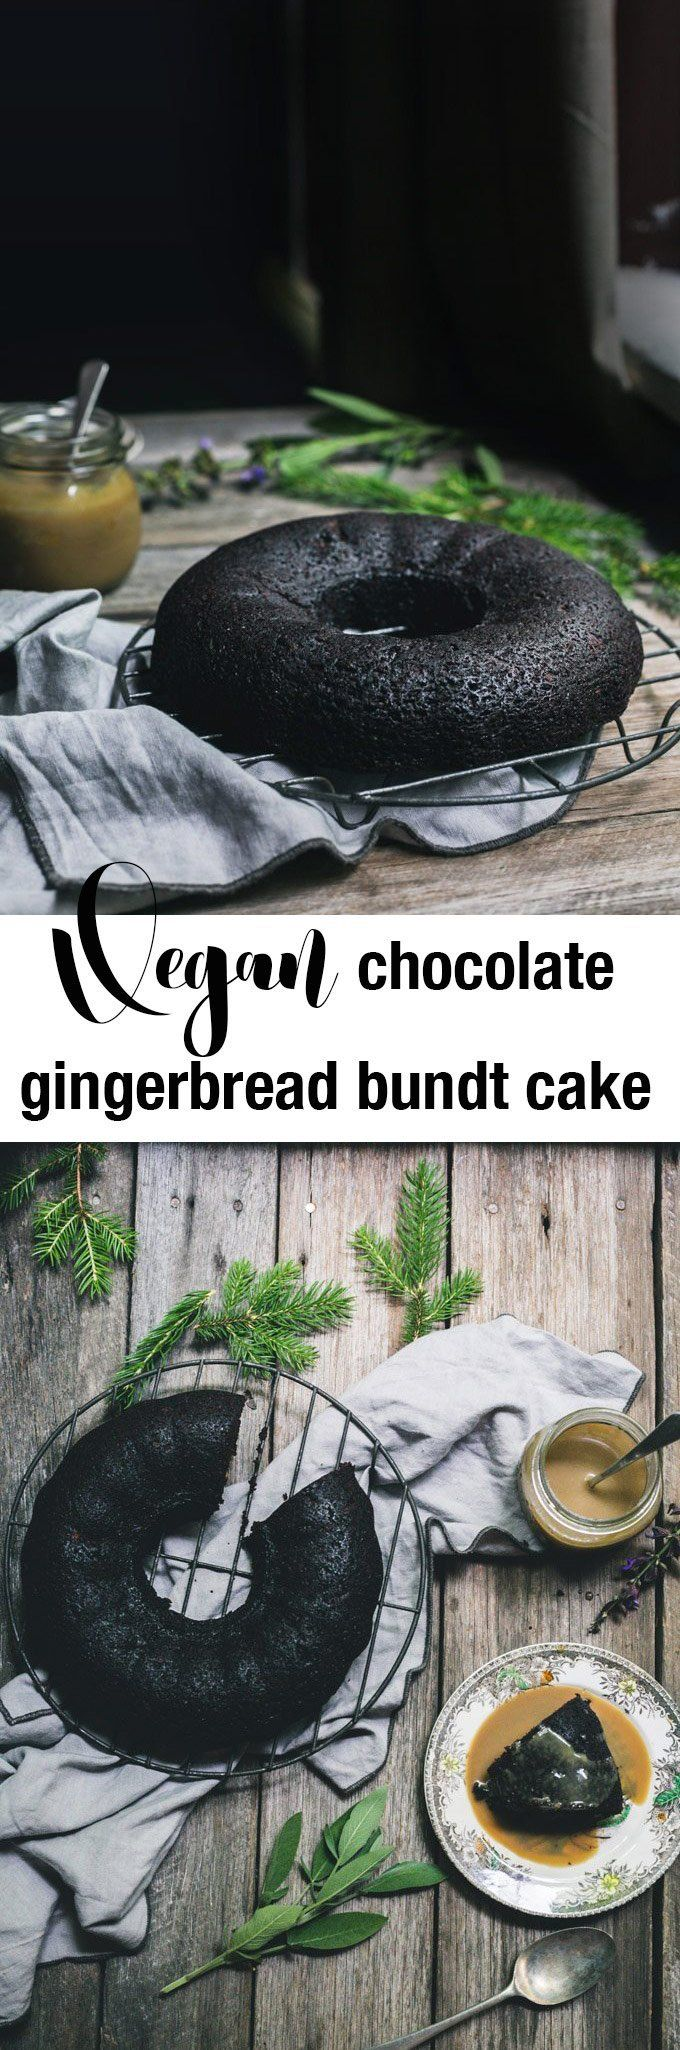 In the time you can say Vegan Chocolate Gingerbread Bundt Cake, you can have this gorgeously moist, heavenly spiced cake on the table.